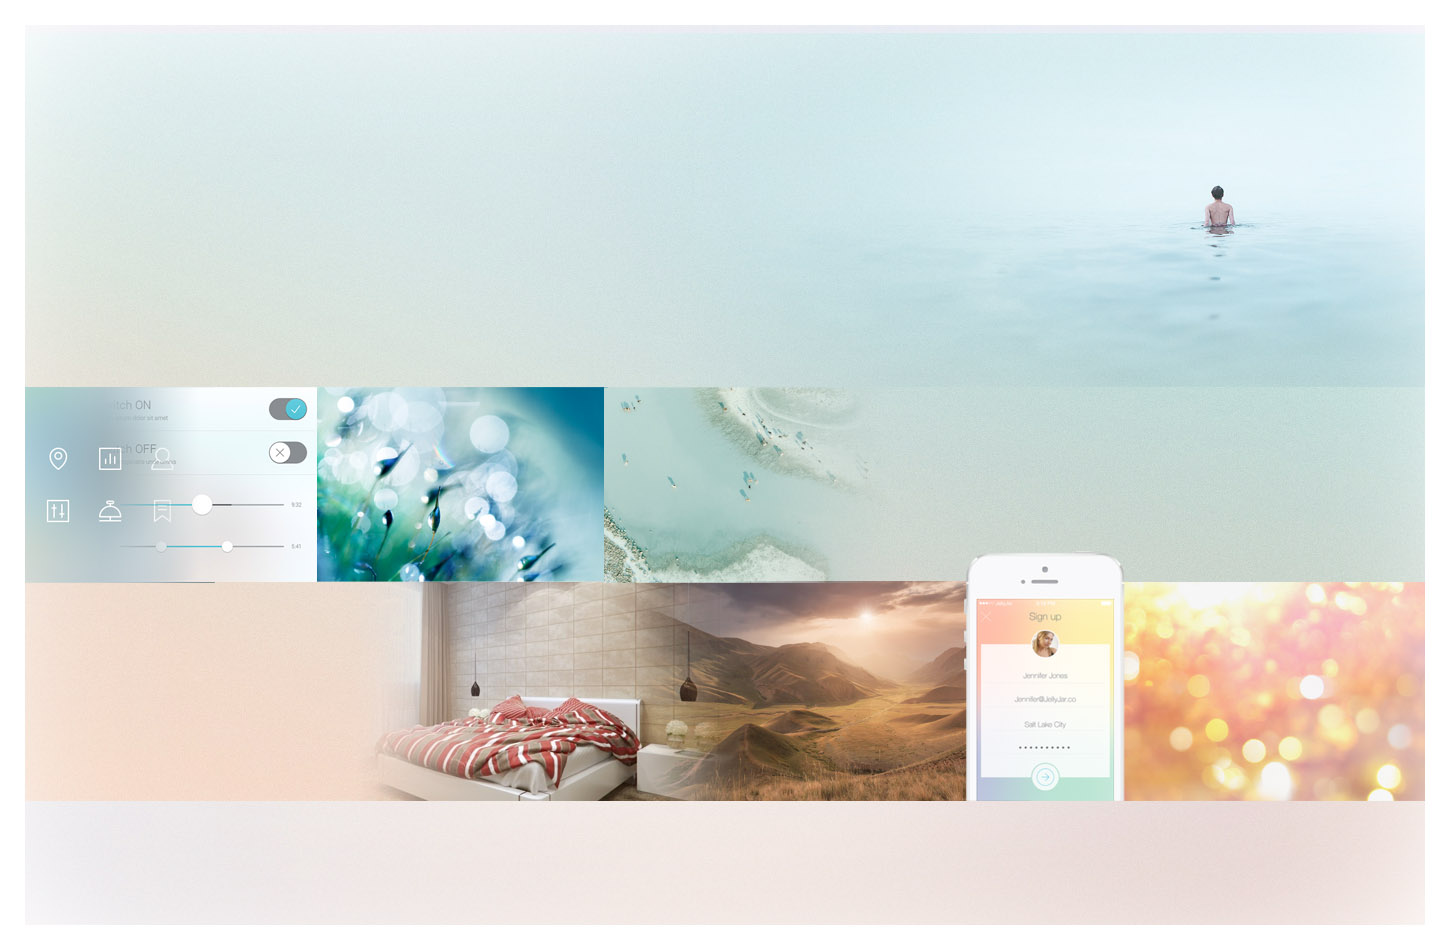 This moodboard shows lights treated as soft sunrises and warm sunsets. The product is the promise of a never-ending daylight. Colors are glowing, like a peaceful sensation spreading from the LEDs. Watercolour and pastel tones release a sensation of simplicity. Colors are floating, light is flowing, as using the product is natural and fluid.